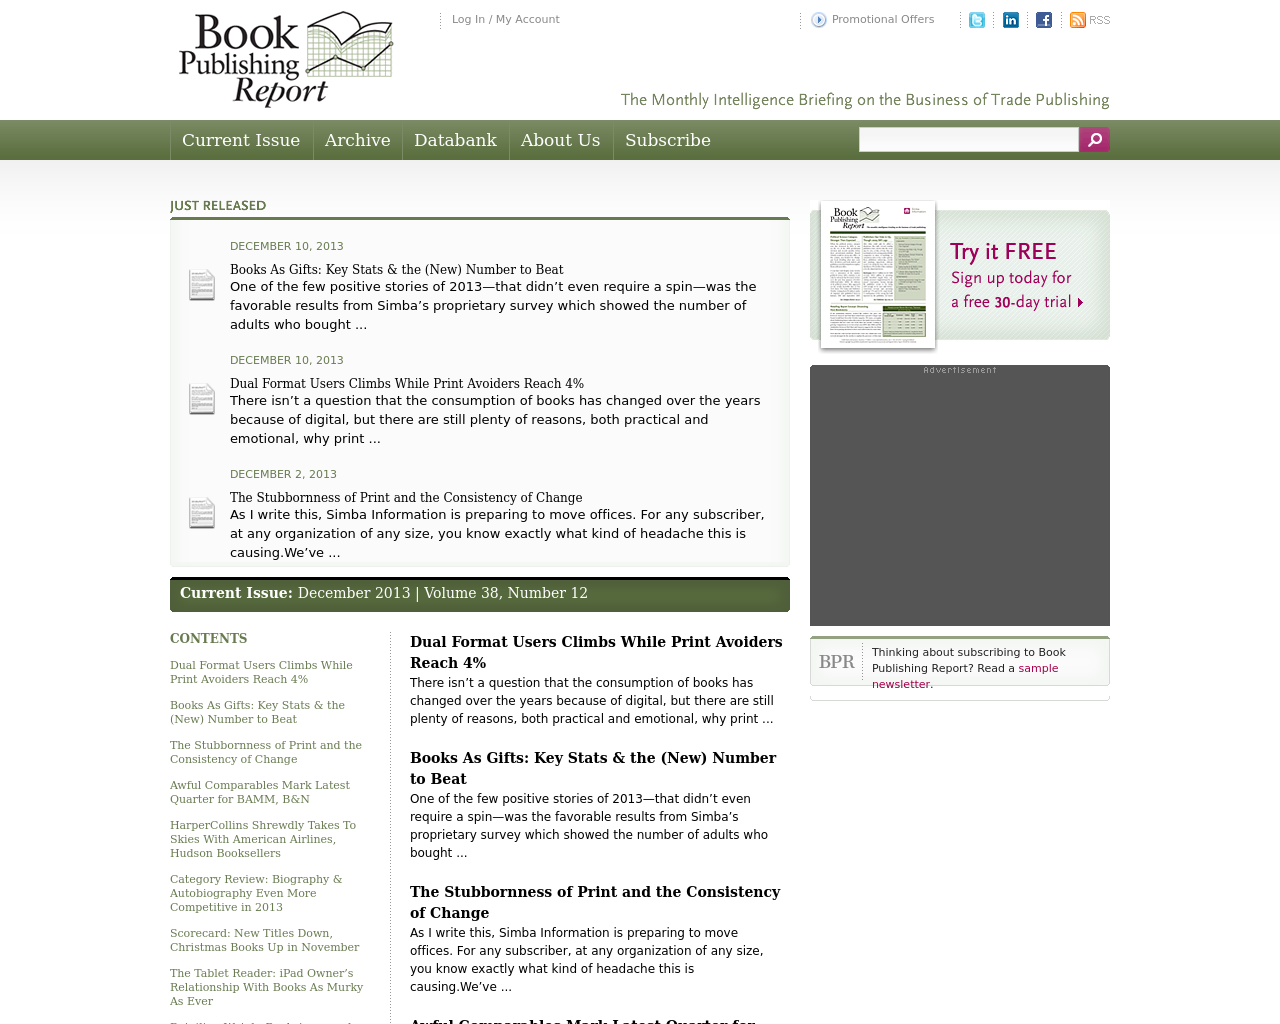 Book-Publishing-Report-Advertising-Reviews-Pricing